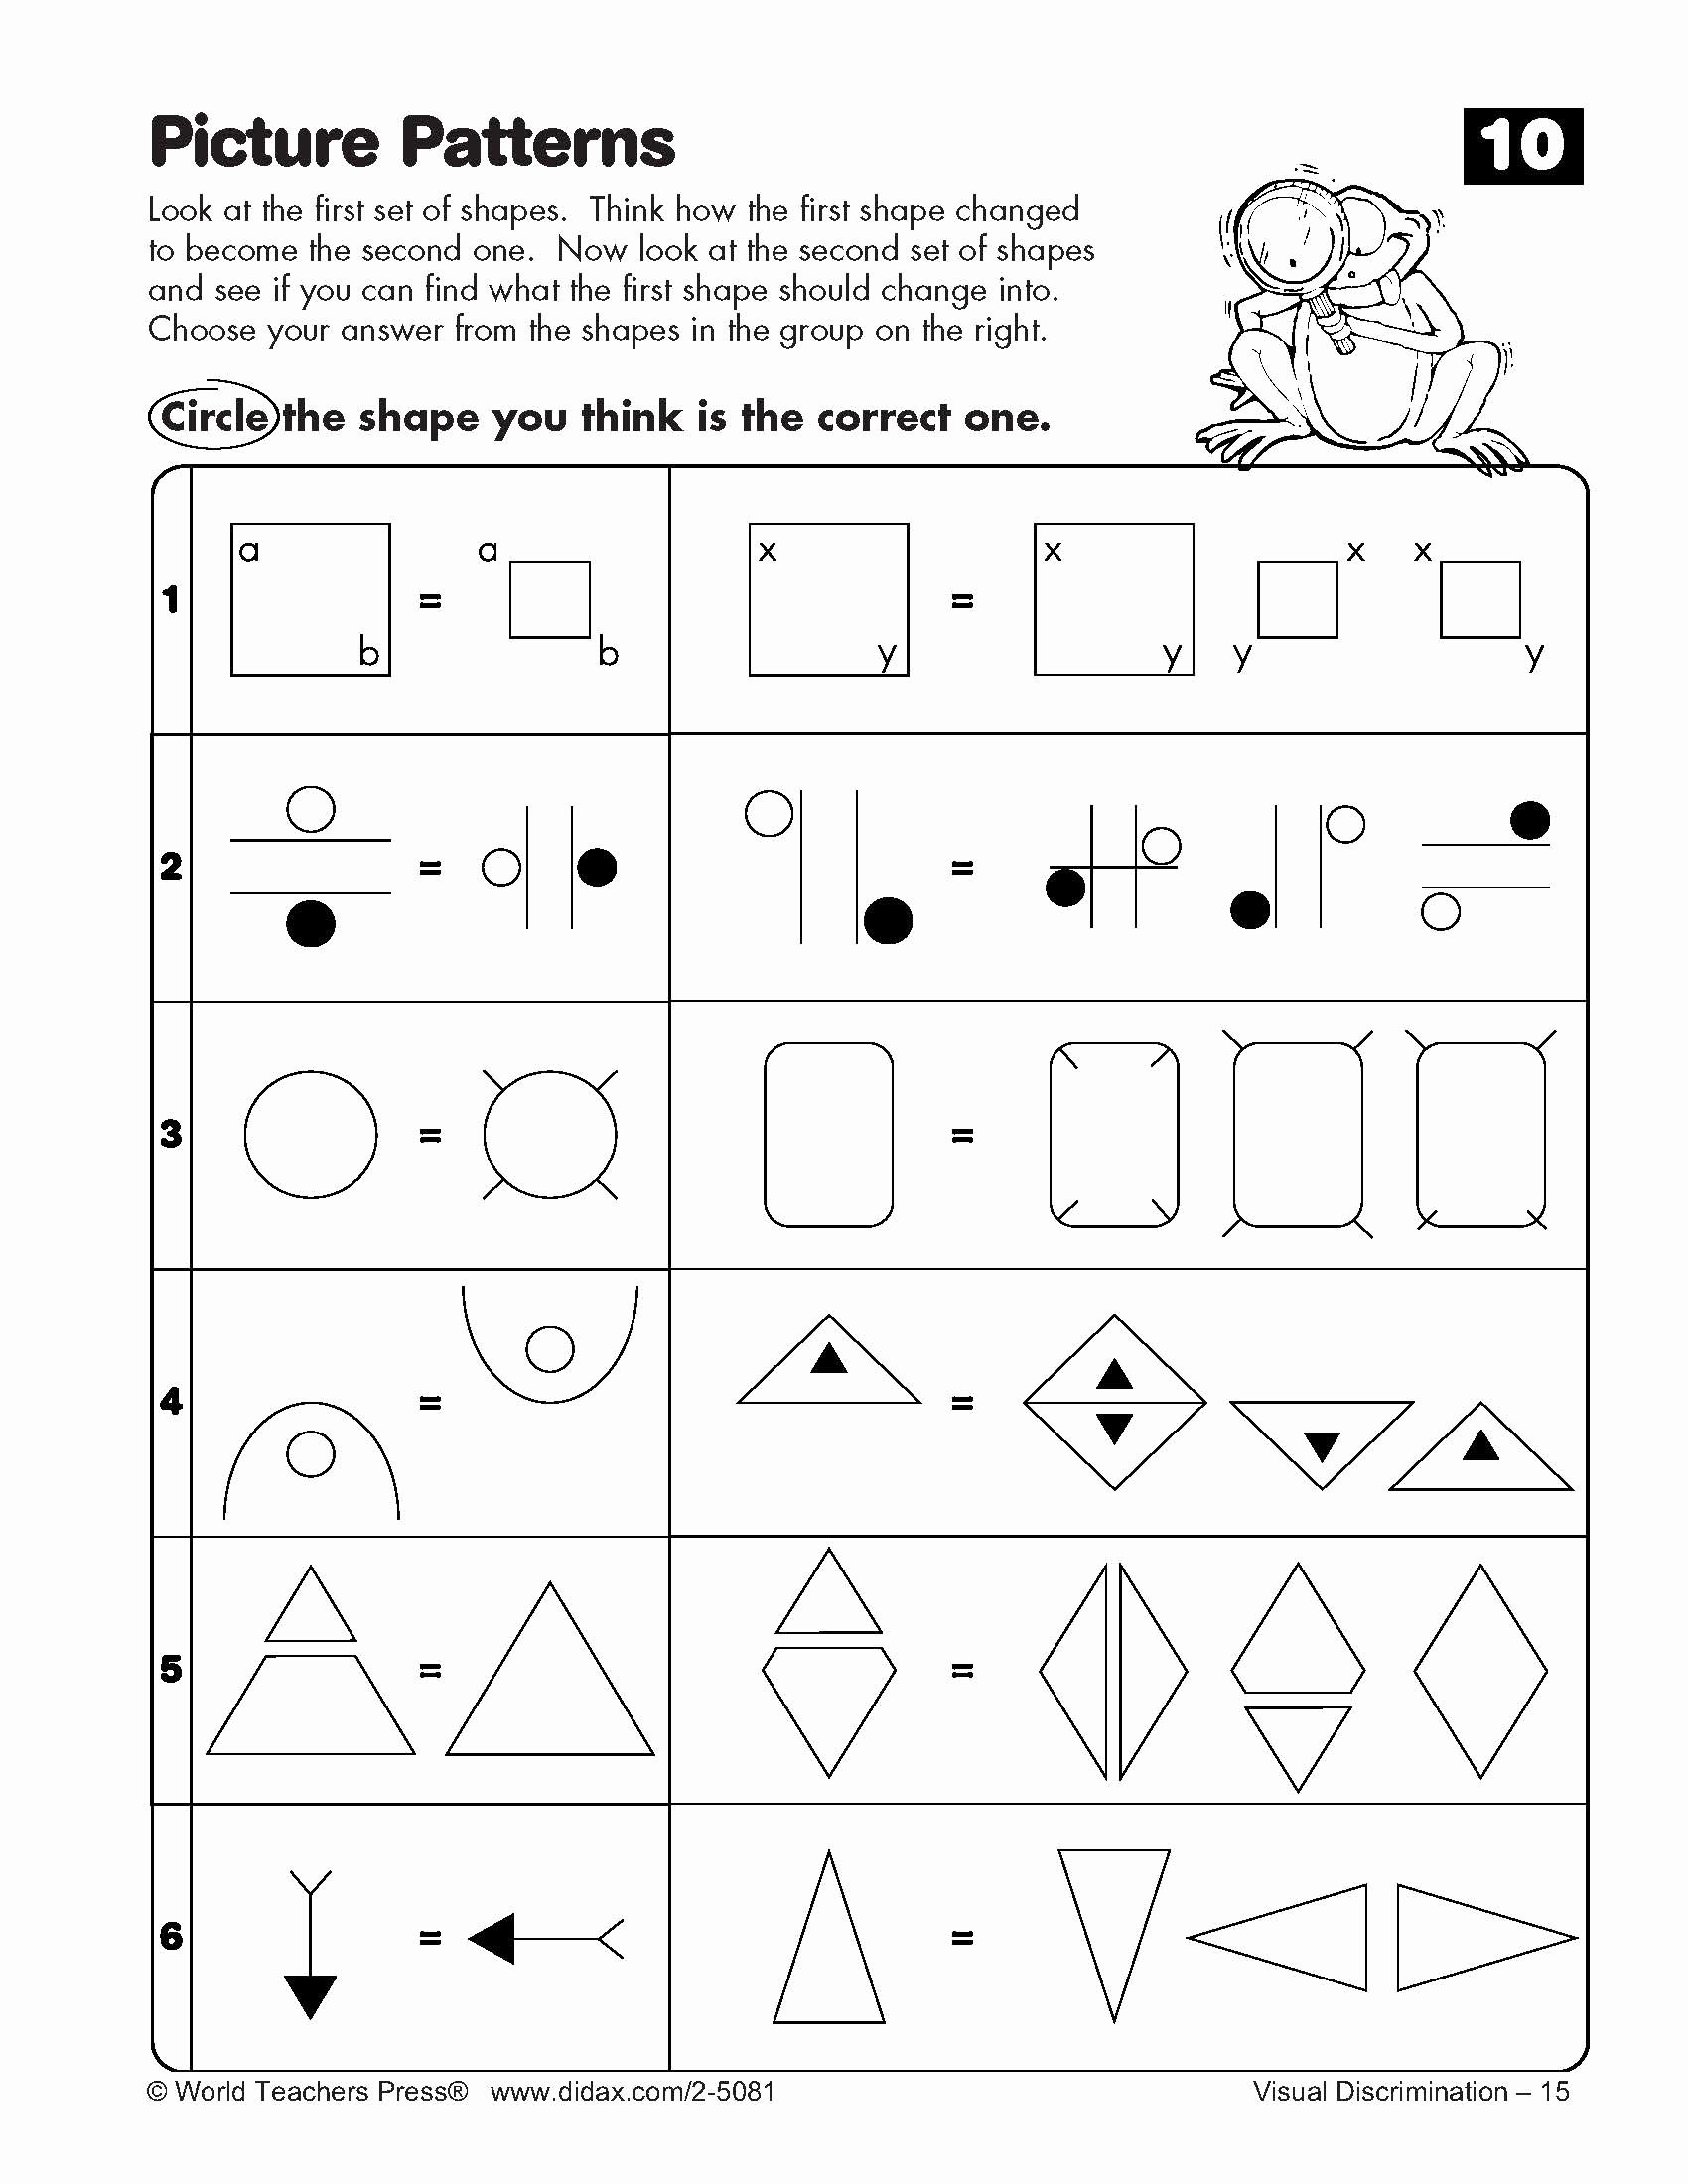 Visual Discrimination Worksheets for Preschoolers Free Visual Discrimination